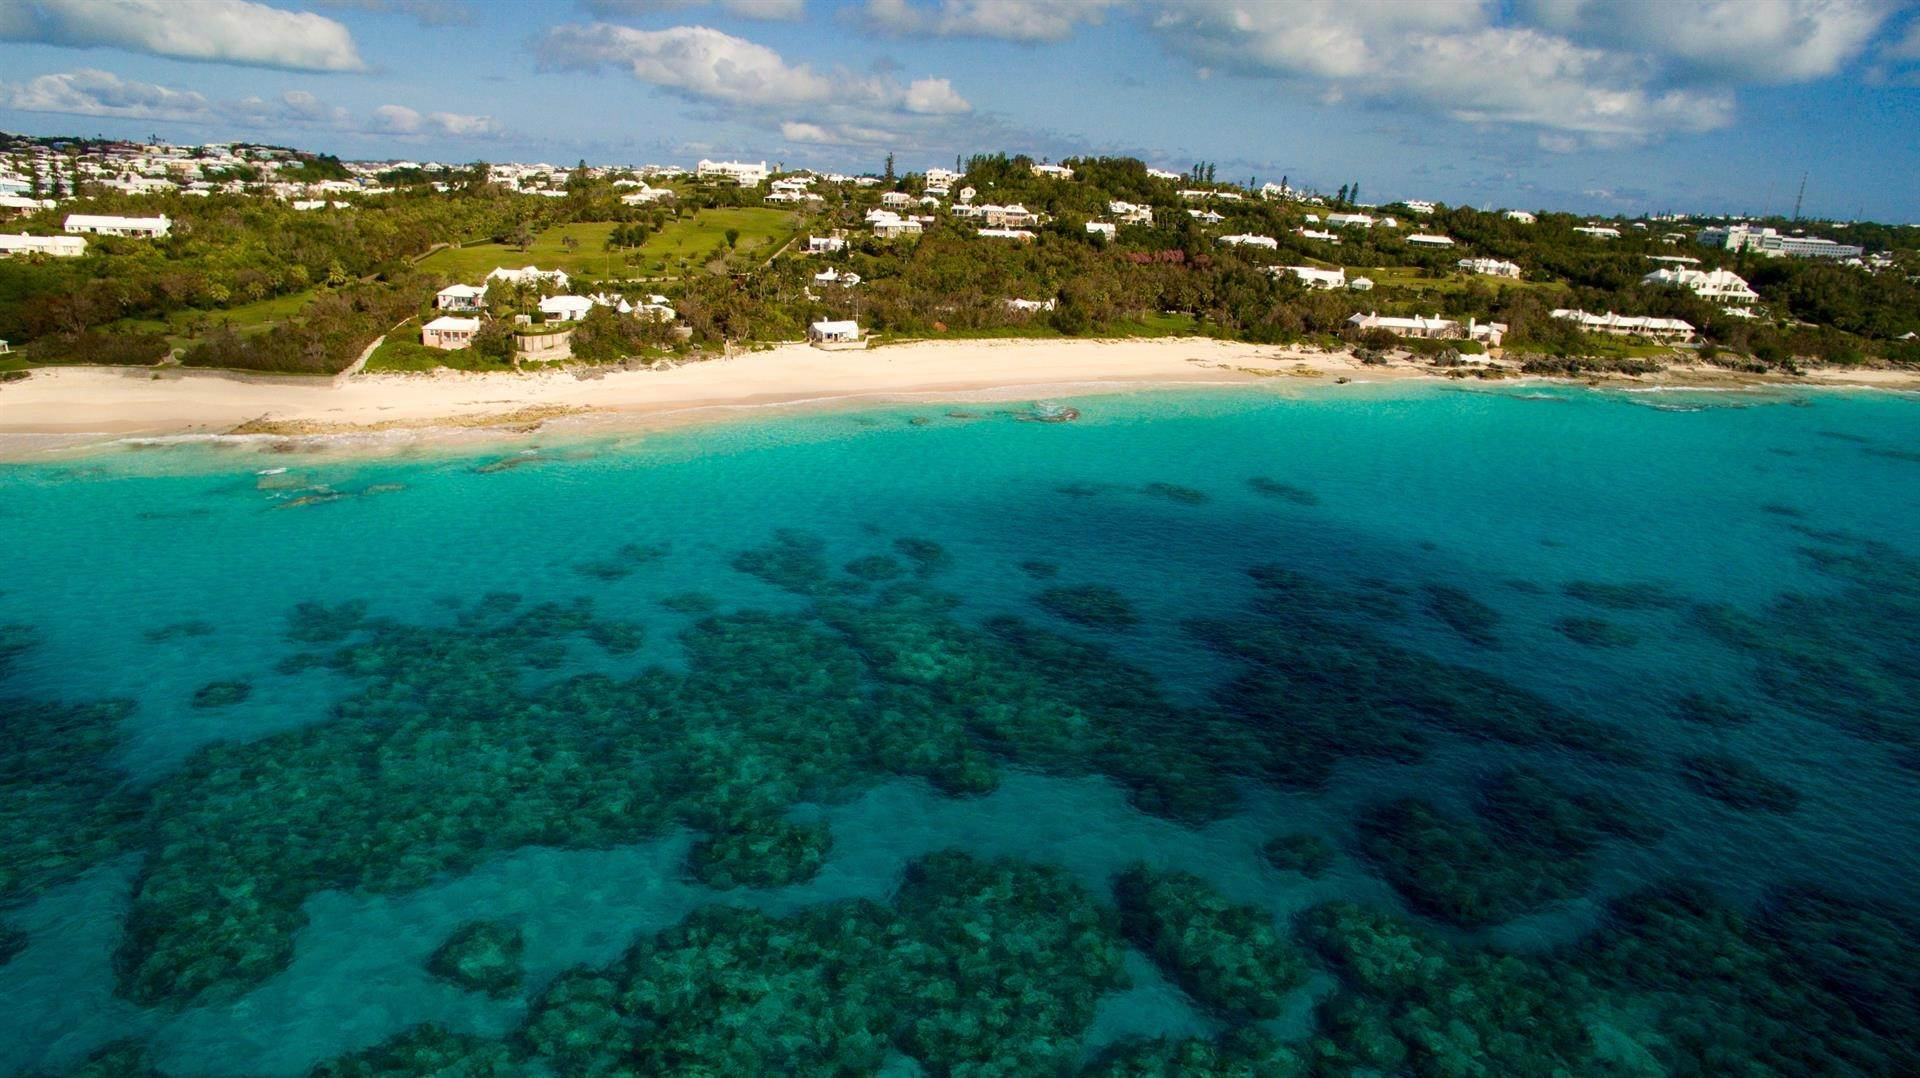 7. Residência para Venda às Bellevue Estate At Grape Bay Beach Bellevue Estate At Grape Bay Beach, 6 Bellevue Drive,Bermuda – Sinclair Realty